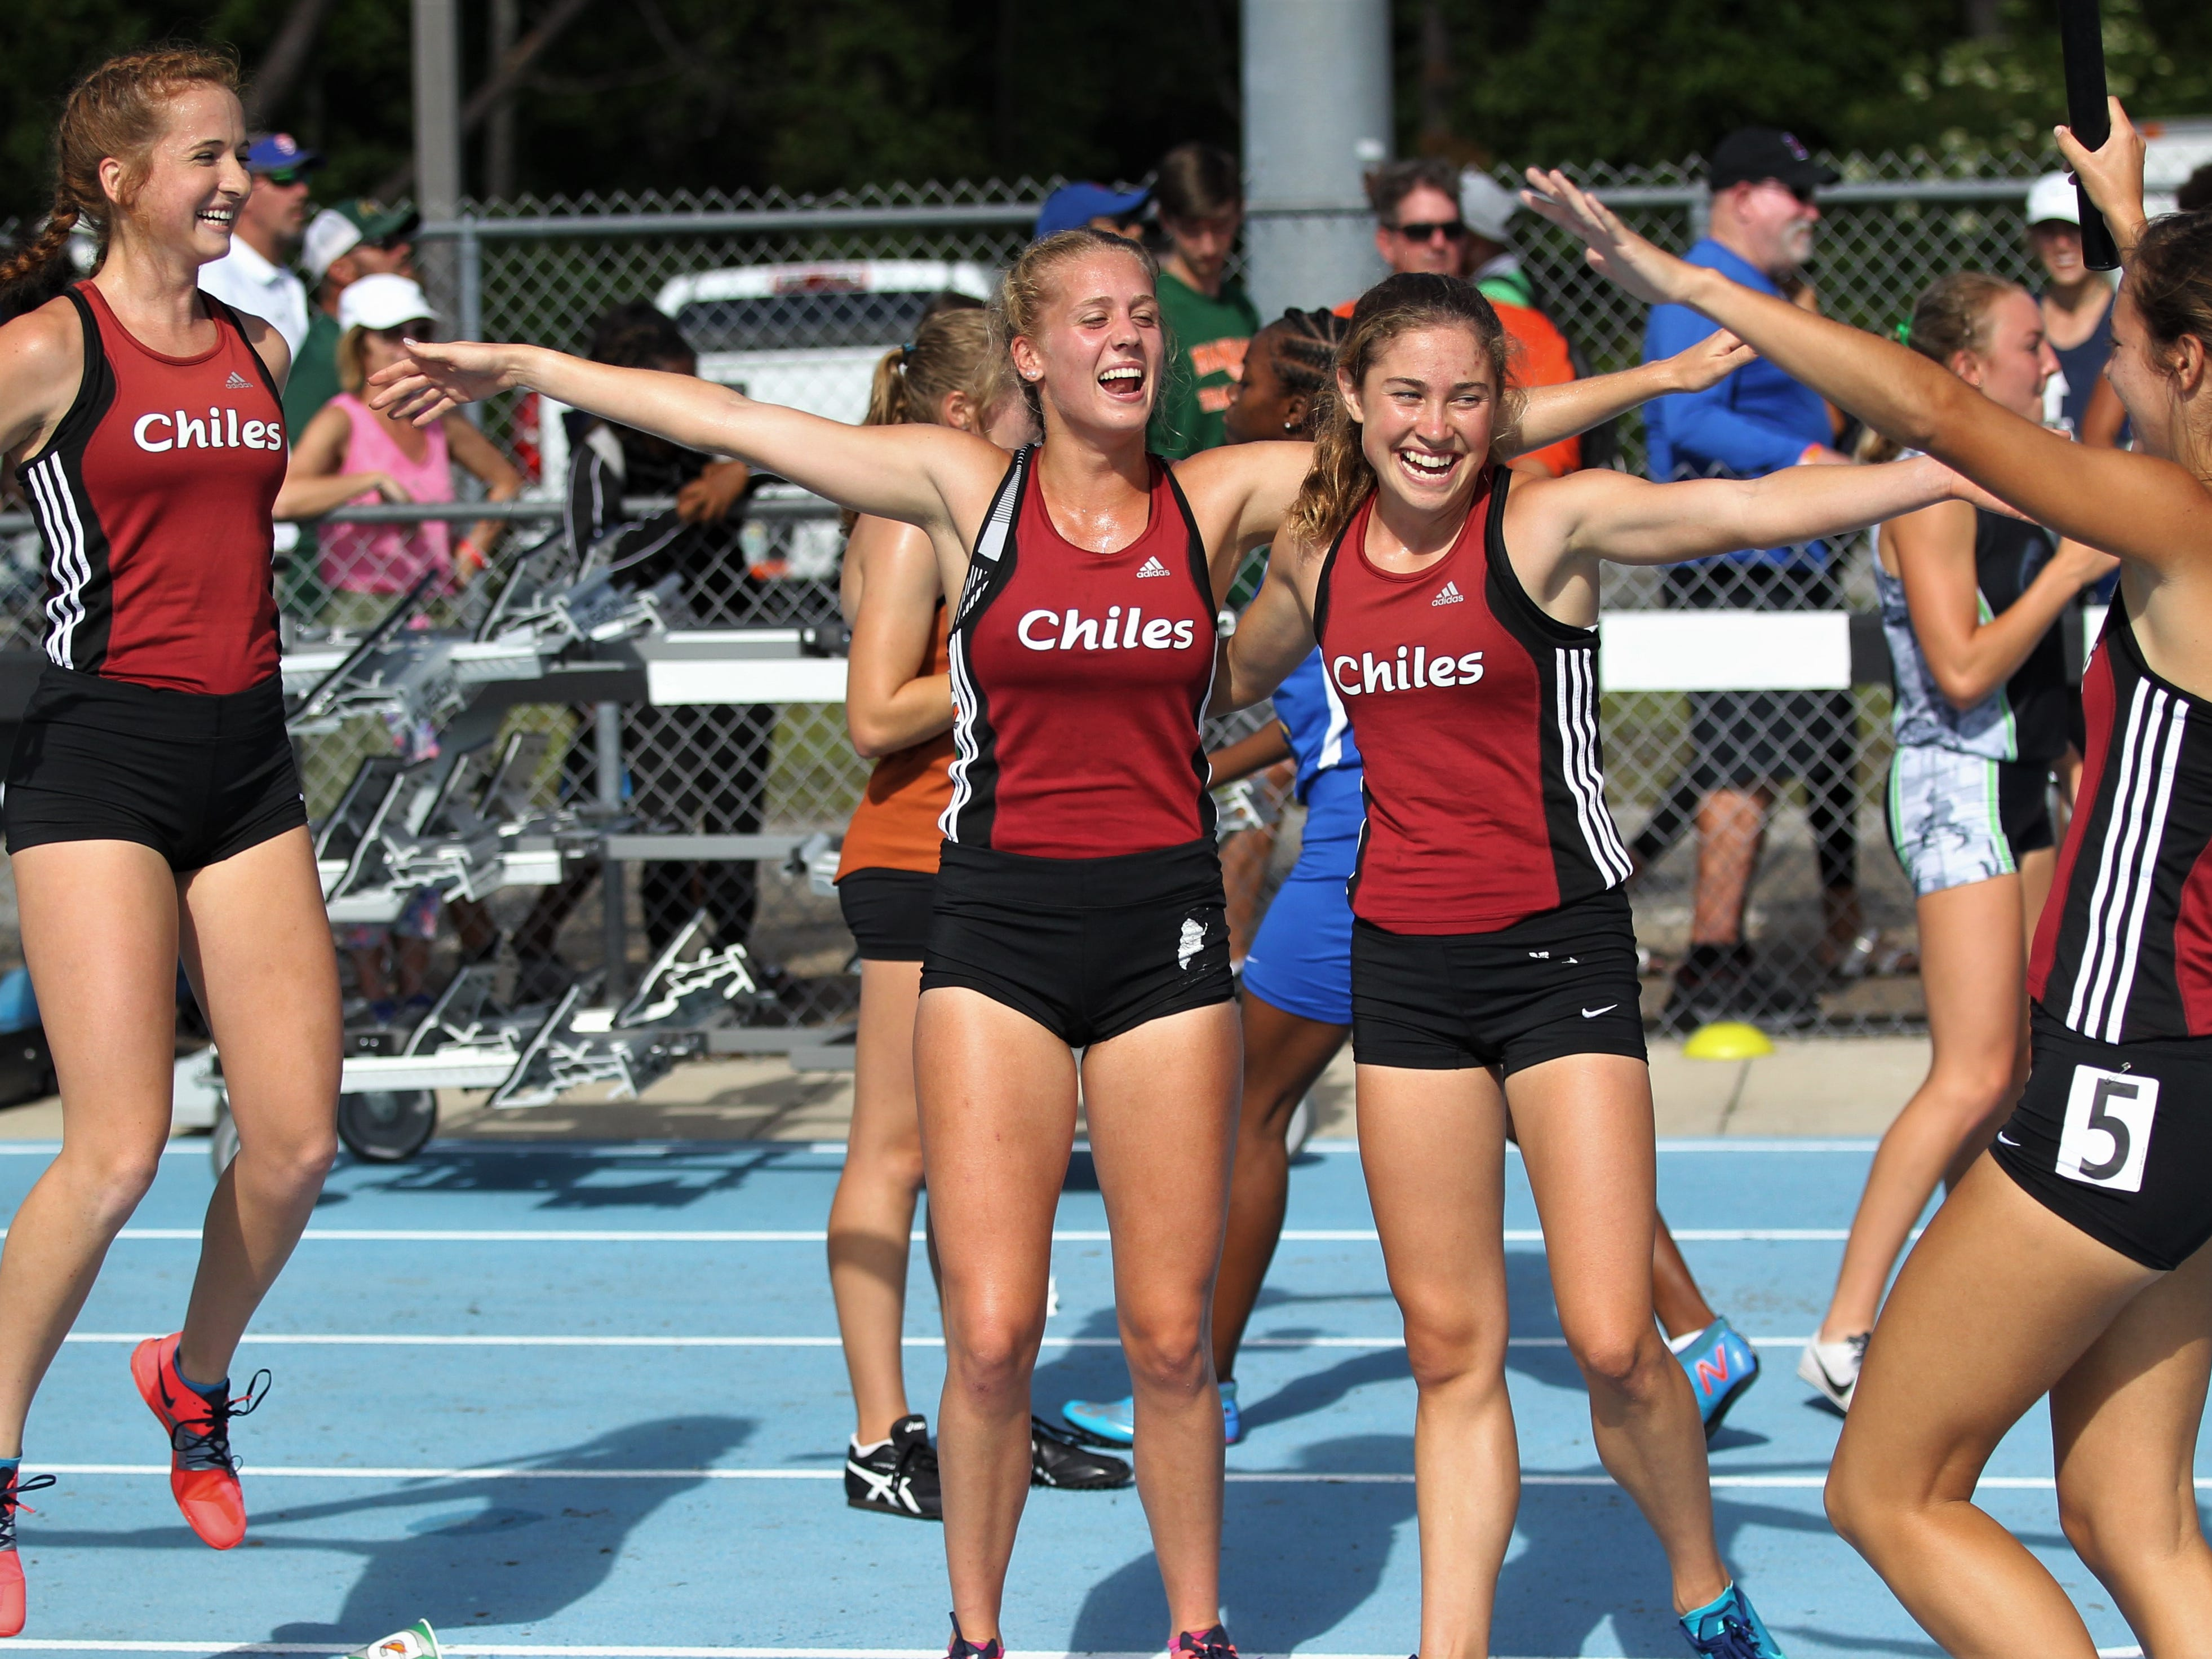 Chiles' girls 4x800 relay team of Emily Culley, Caitlin Wilkey, Alyson Churchill and Olivia Miller captured gold in Florida's fourth-best time ever during the FHSAA Track & Field State Championships at UNF's Hodges Stadium in Jacksonville on May 4, 2019.